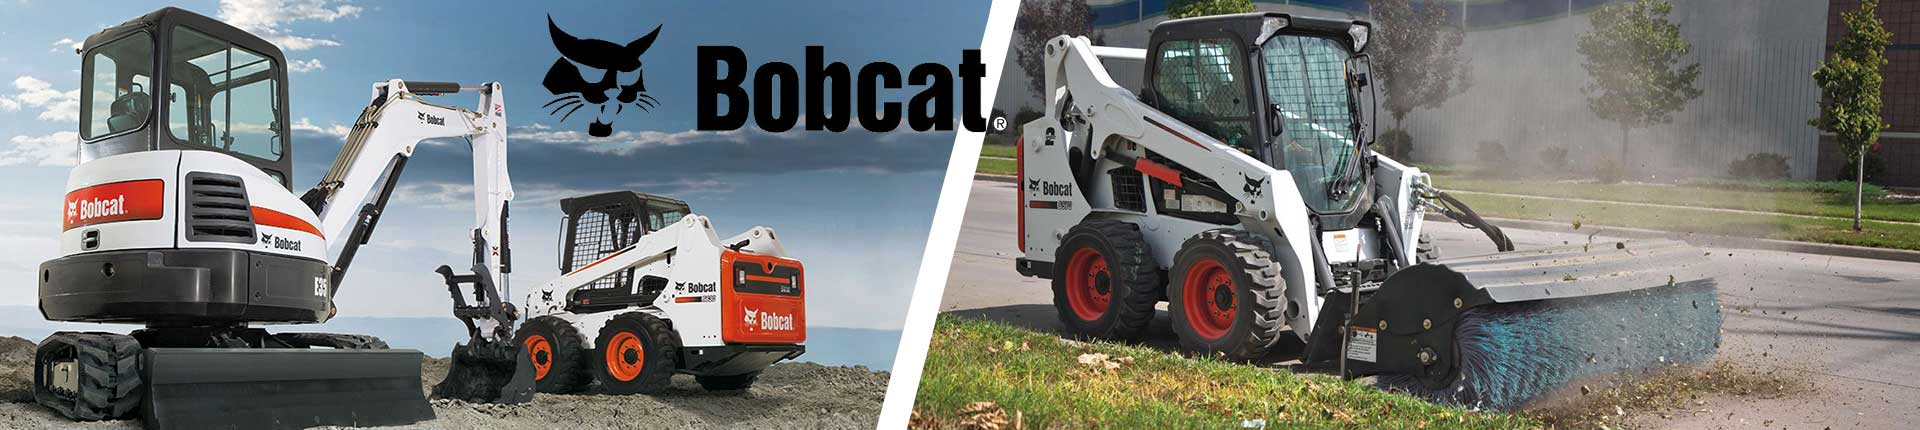 Equipment Rental in Oswego and Sandwich IL   New Equipment Sales in